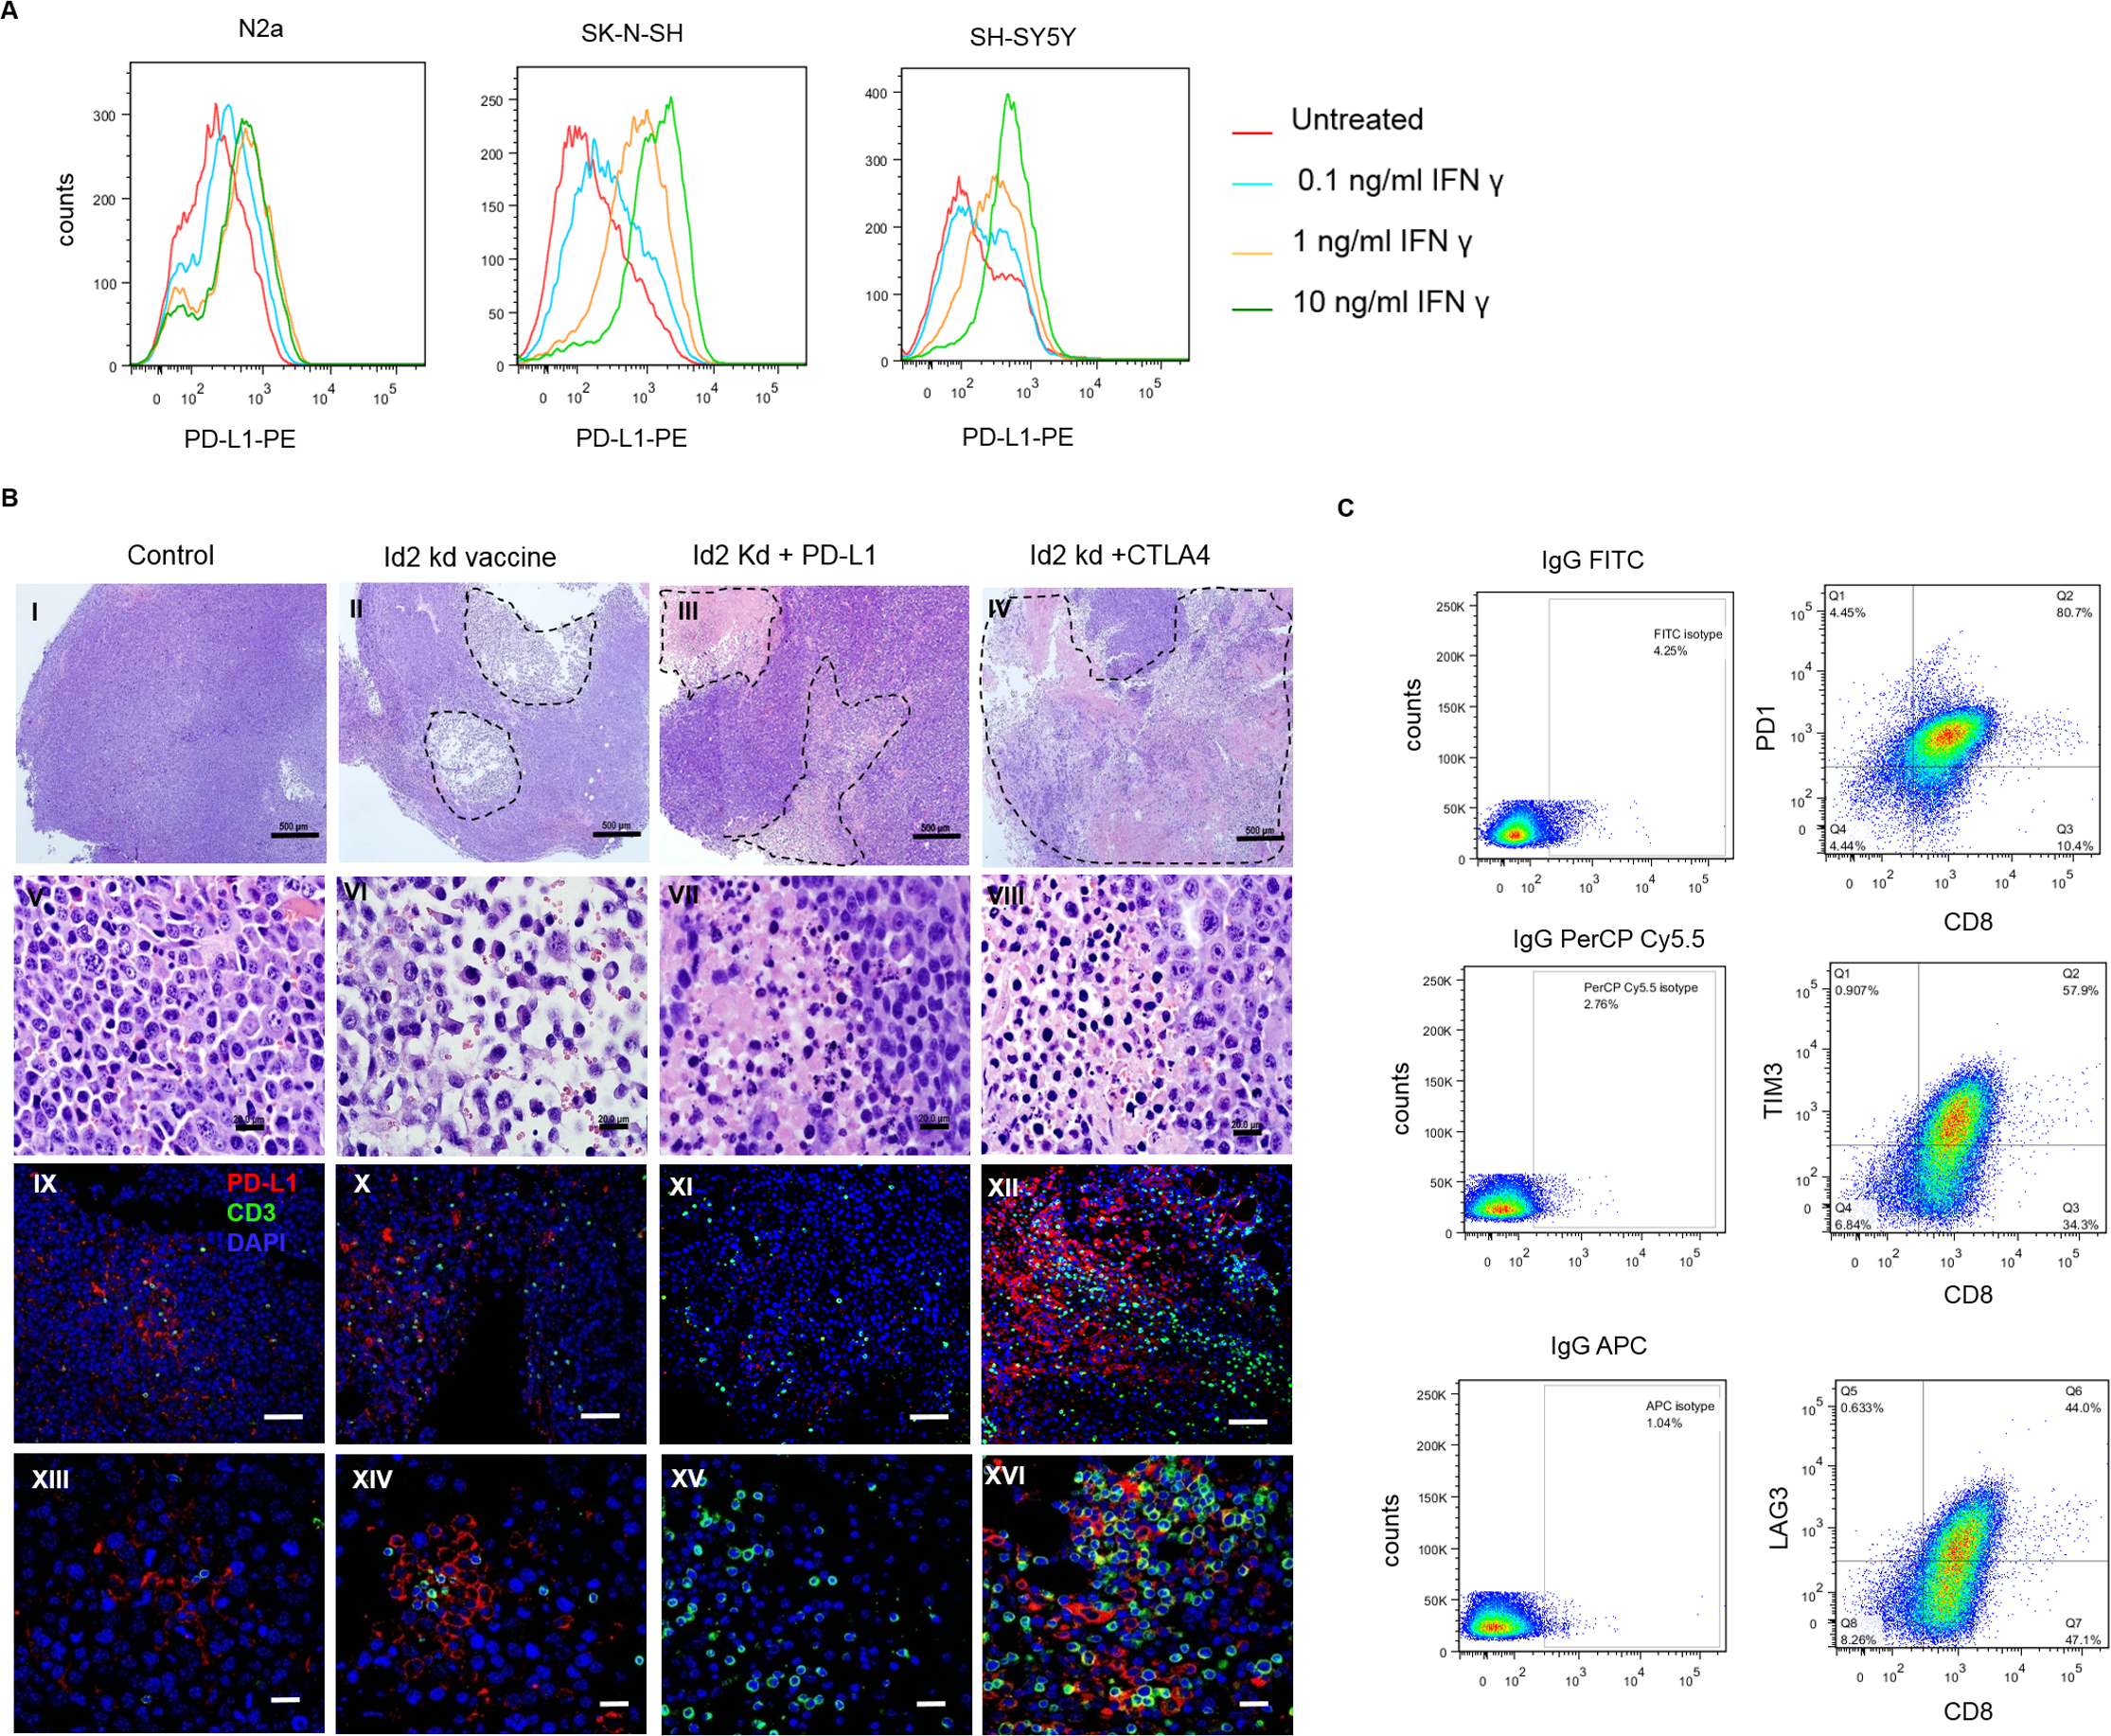 Programmed cell death-ligand 1 (PD-L1) is expressed on both mouse and human neuroblastoma cell lines and is up-regulated following 24-hour interferon gamma (IFNγ) exposure.